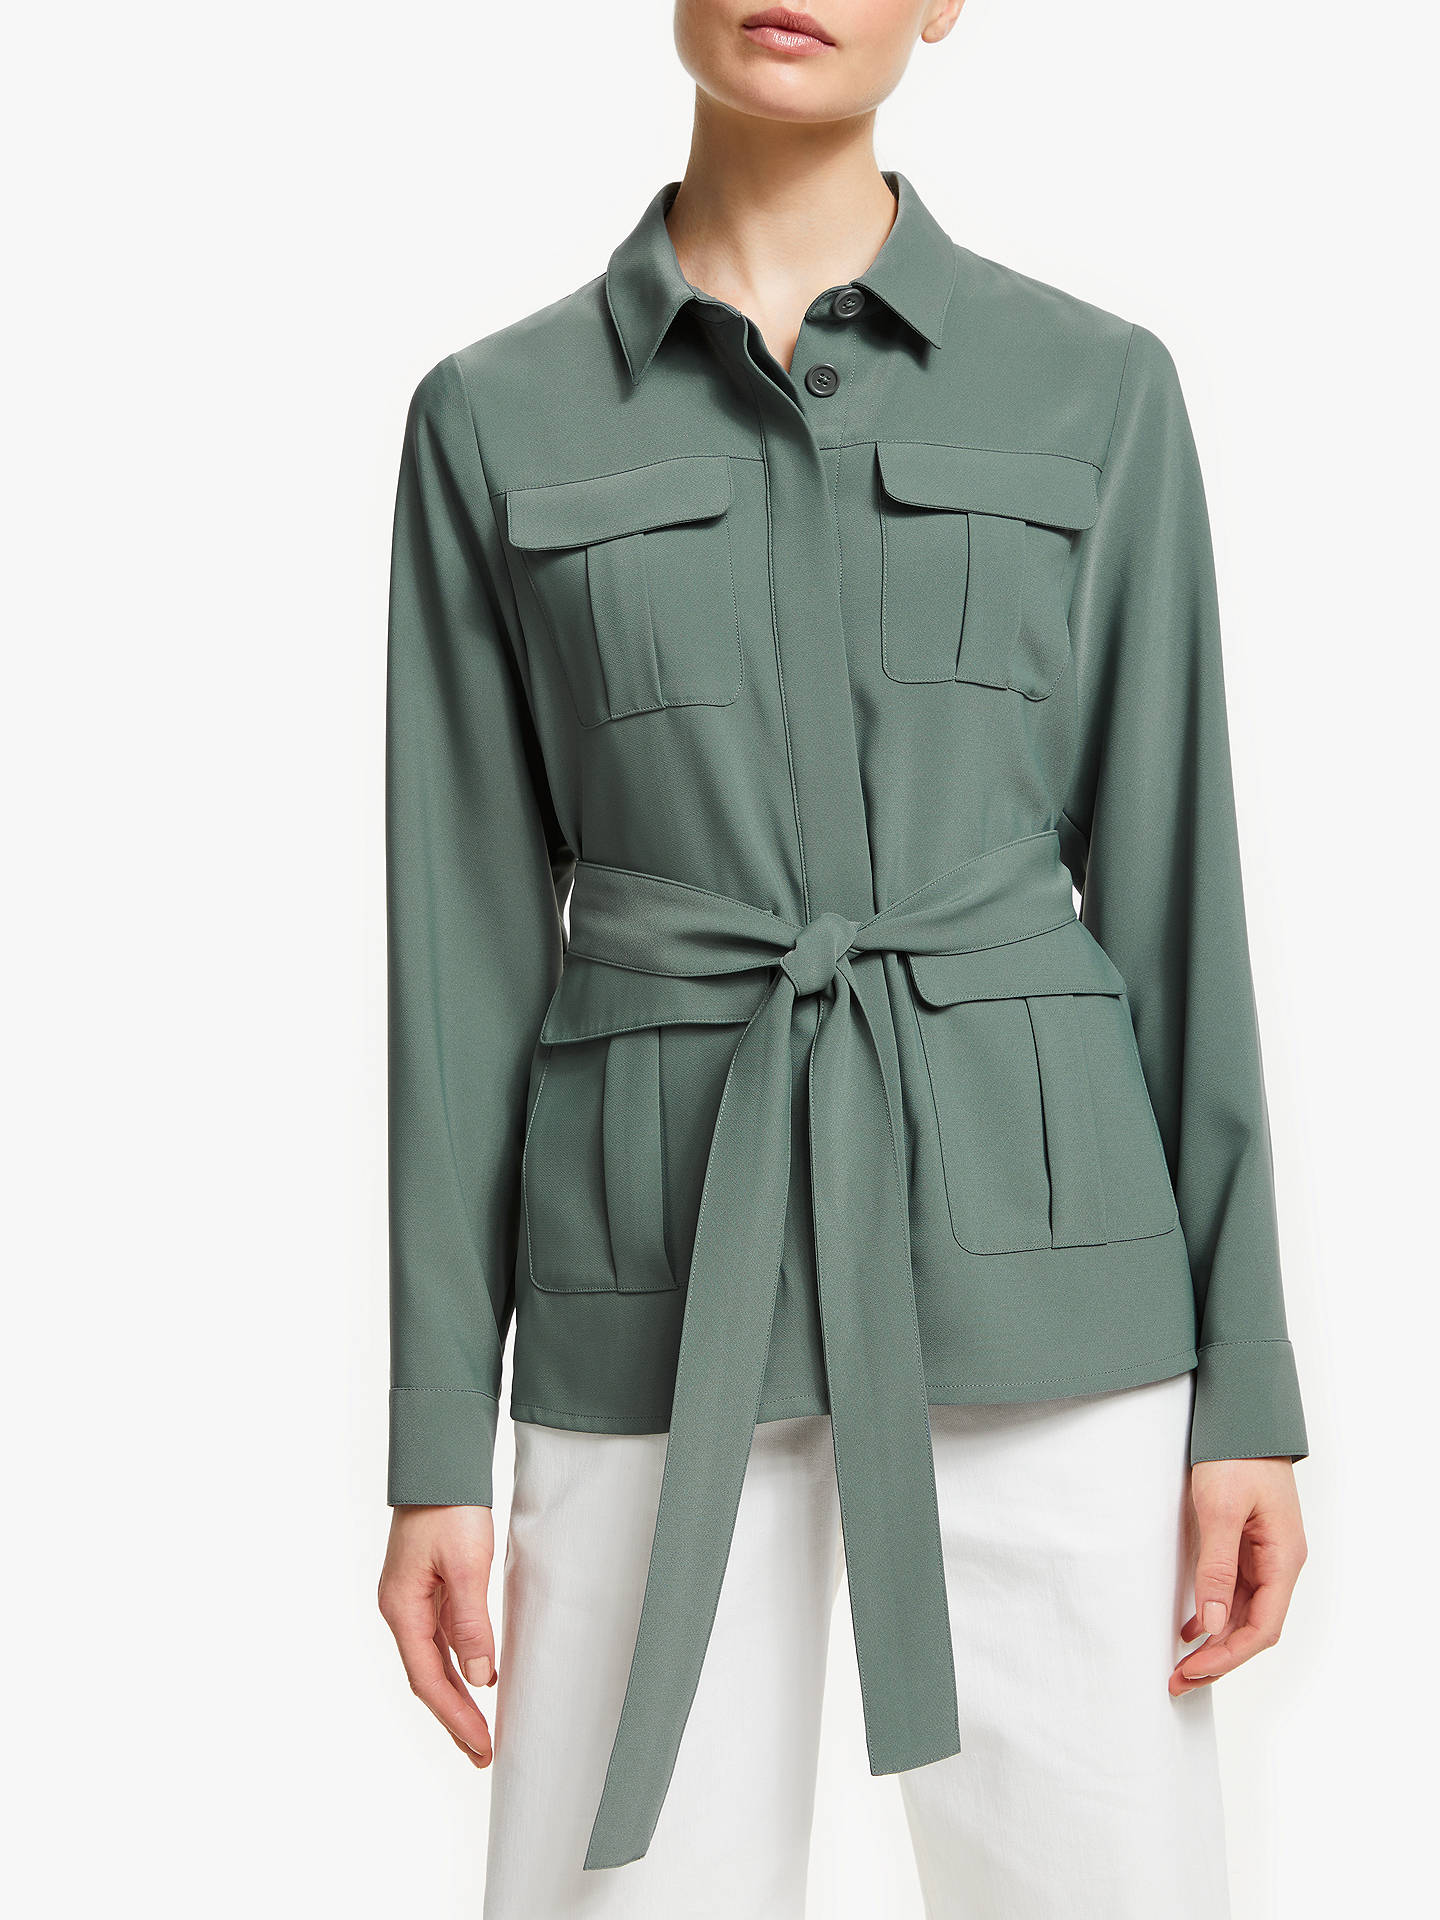 Buy John Lewis & Partners Safari Utility Jacket, Green, 8 Online at johnlewis.com